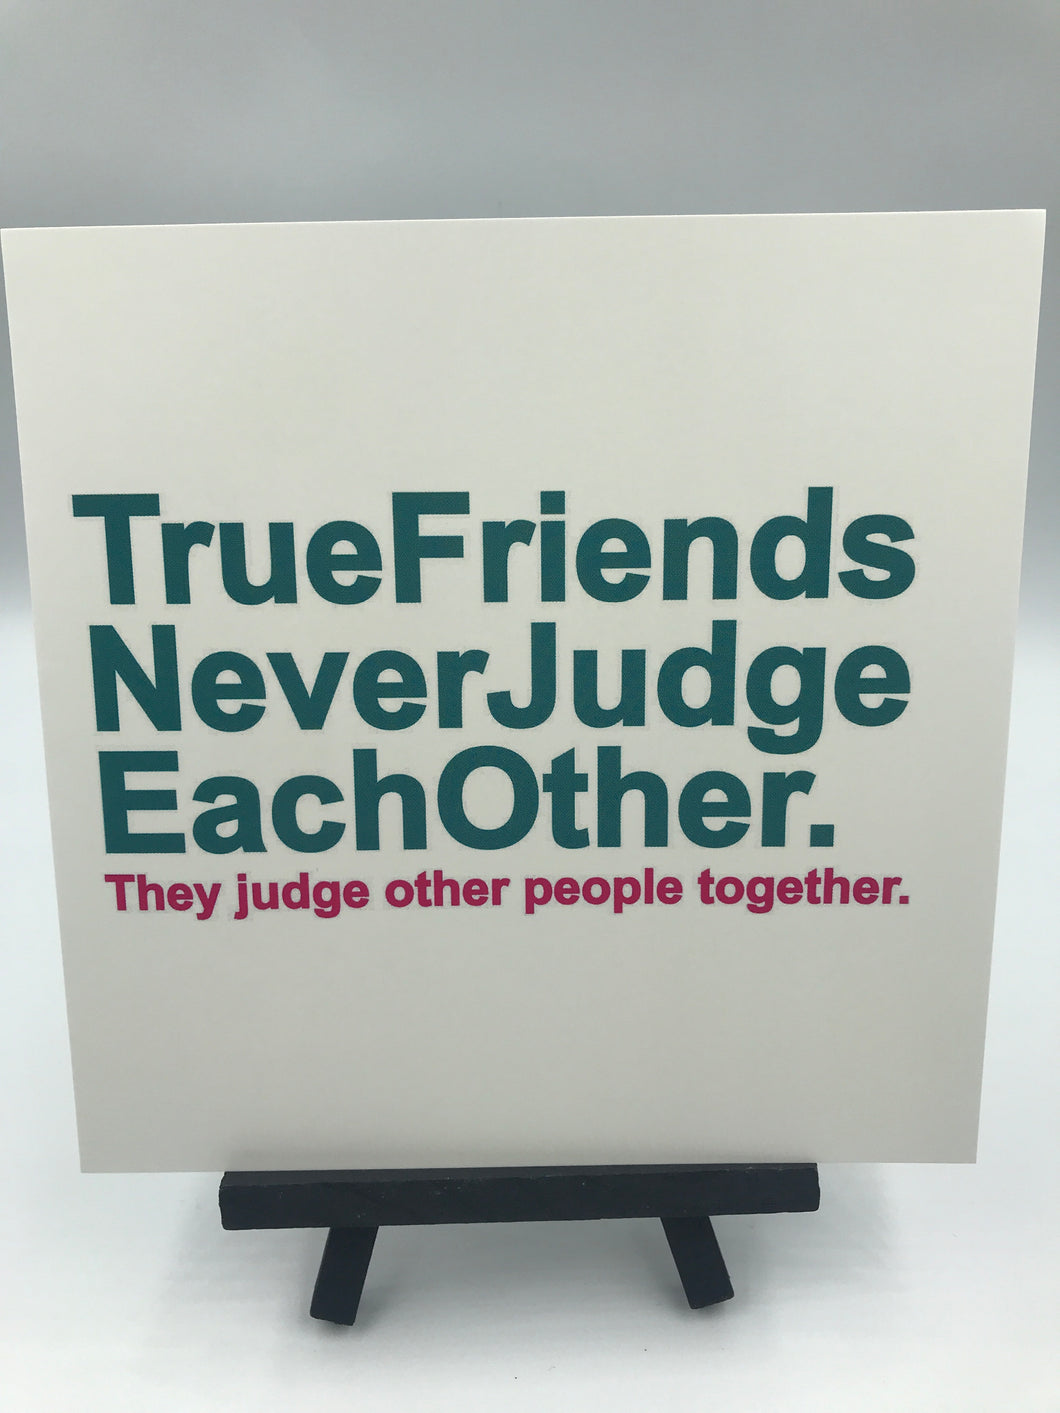 True friends never judge each other